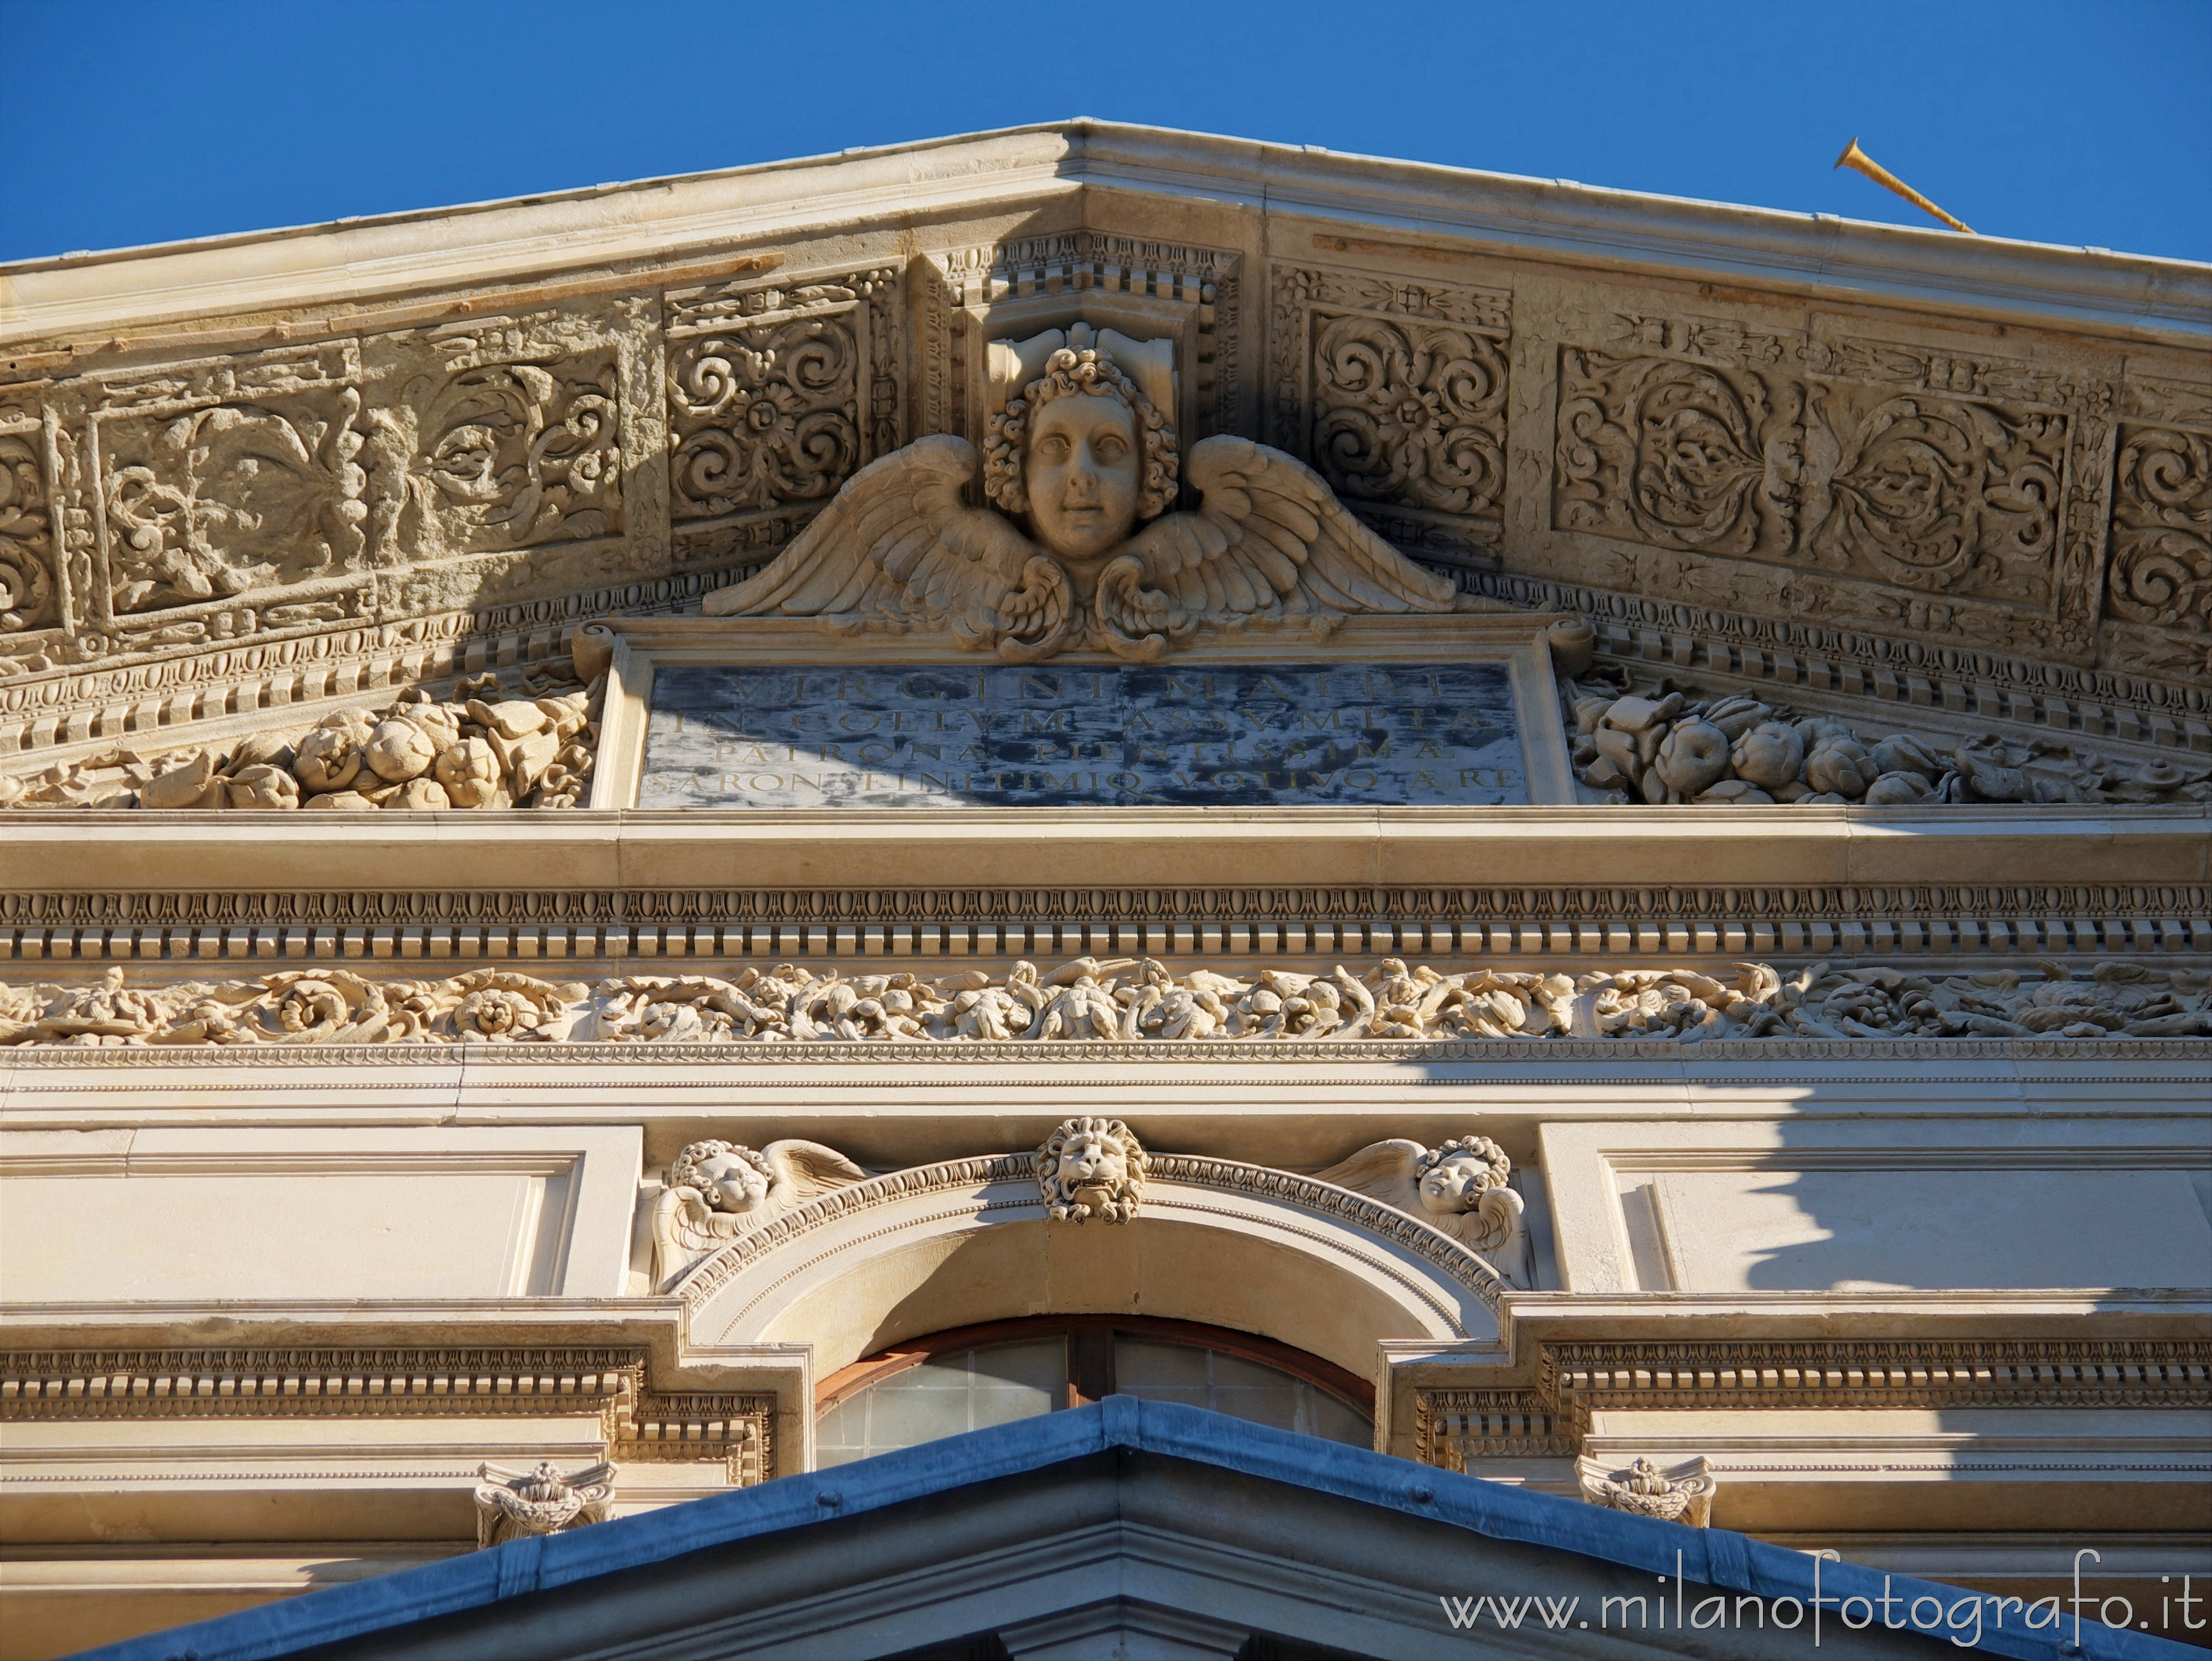 Saronno (Varese, Italy): Detail of the facade of the Sanctuary of the Blessed Virgin of the Miracles - Saronno (Varese, Italy)